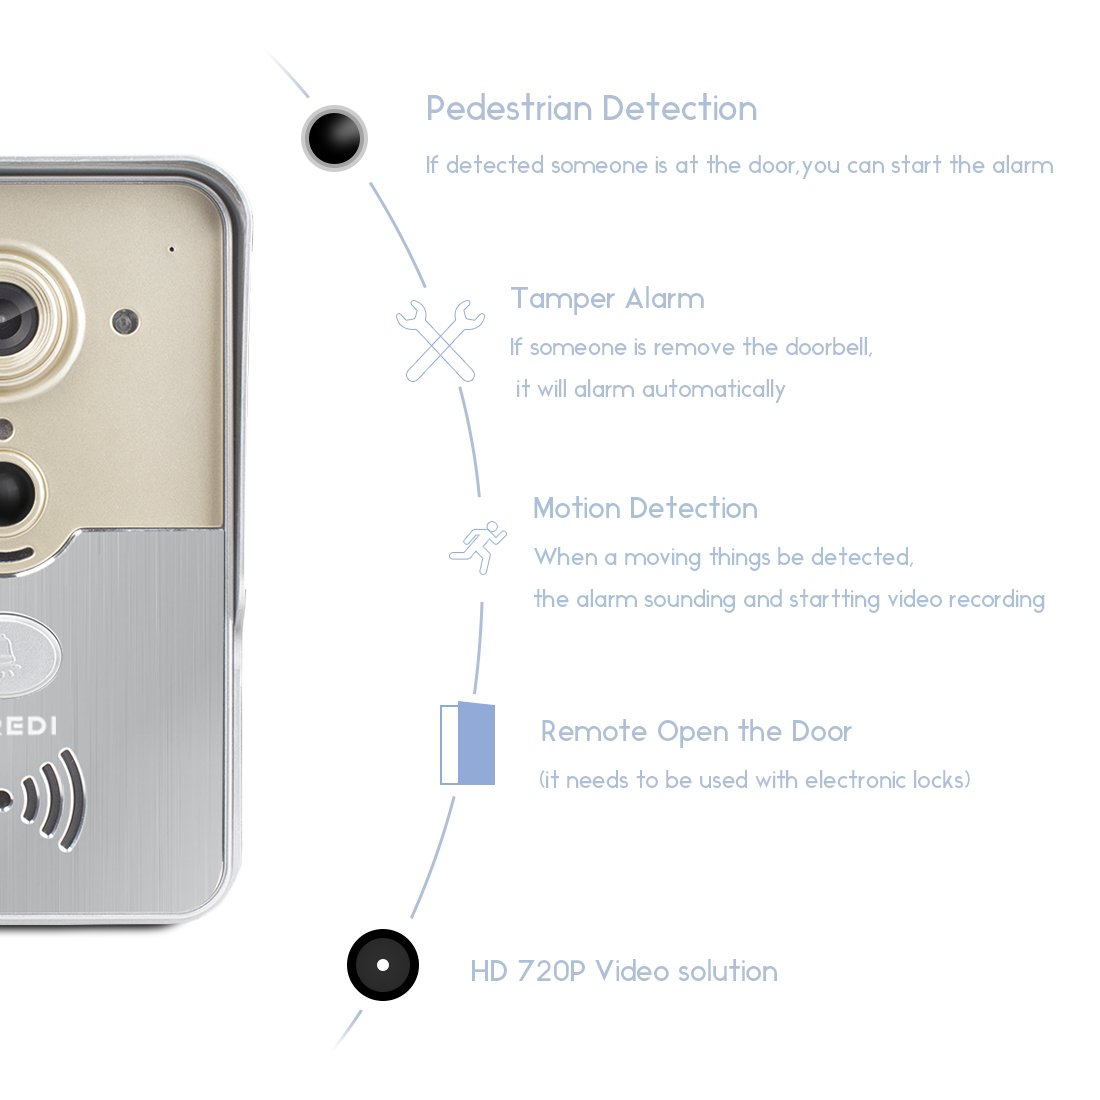 FREDI Smart Home WiFi Remote Video Door Phone Intercom Doorbell Camera HD 720P Support P2P Alarm IR Night Vision Supports iOS//Android System